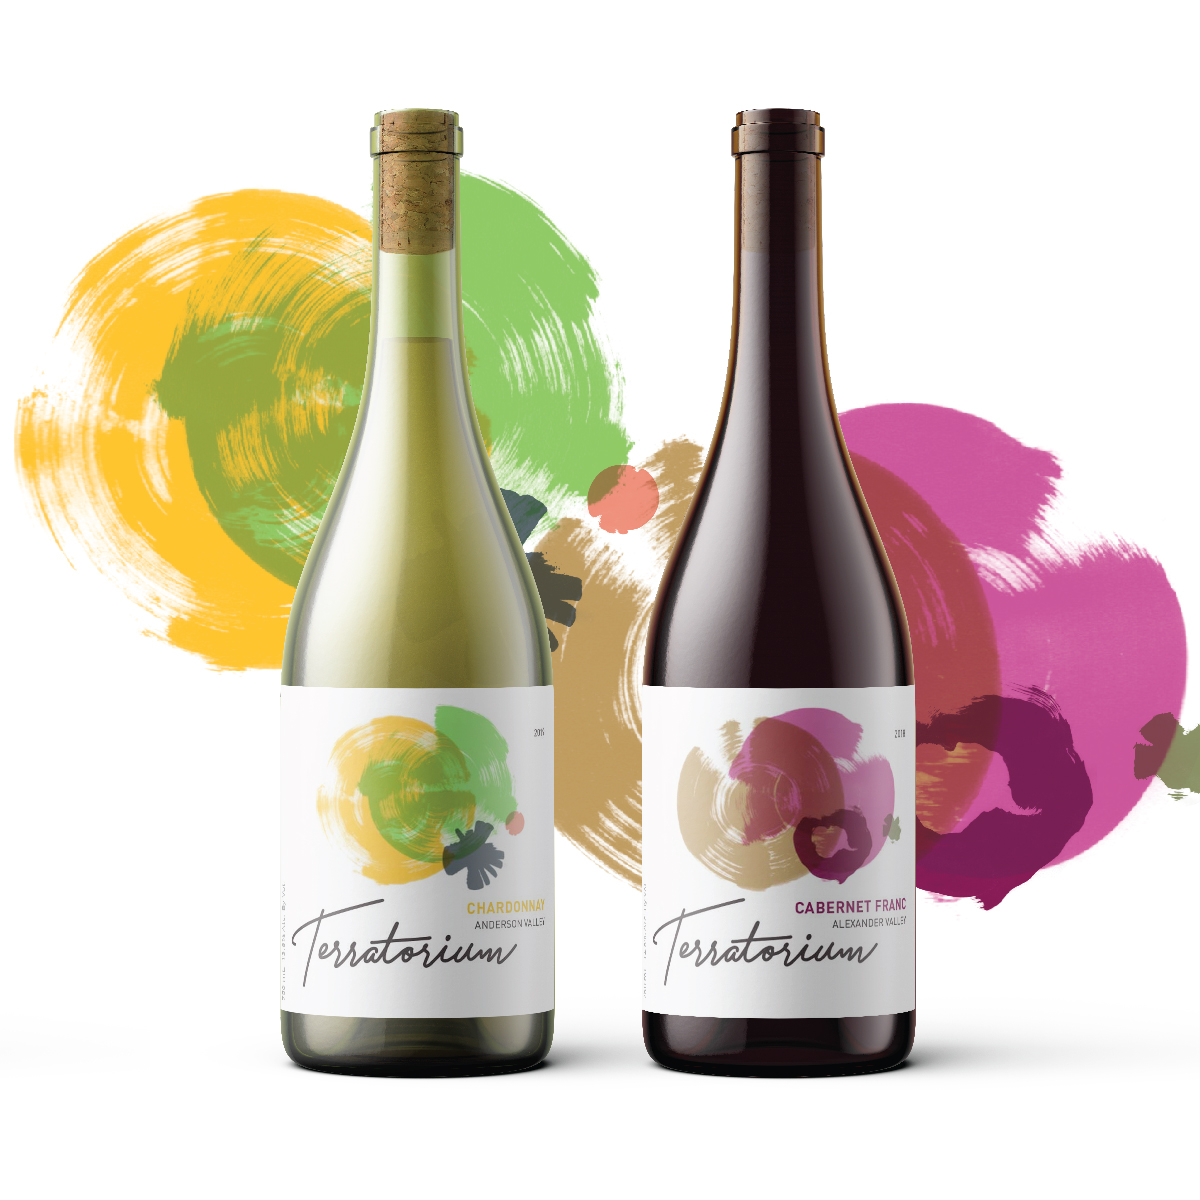 Tommyink Creates a Lovely Packaging Design for Terratorium Wines